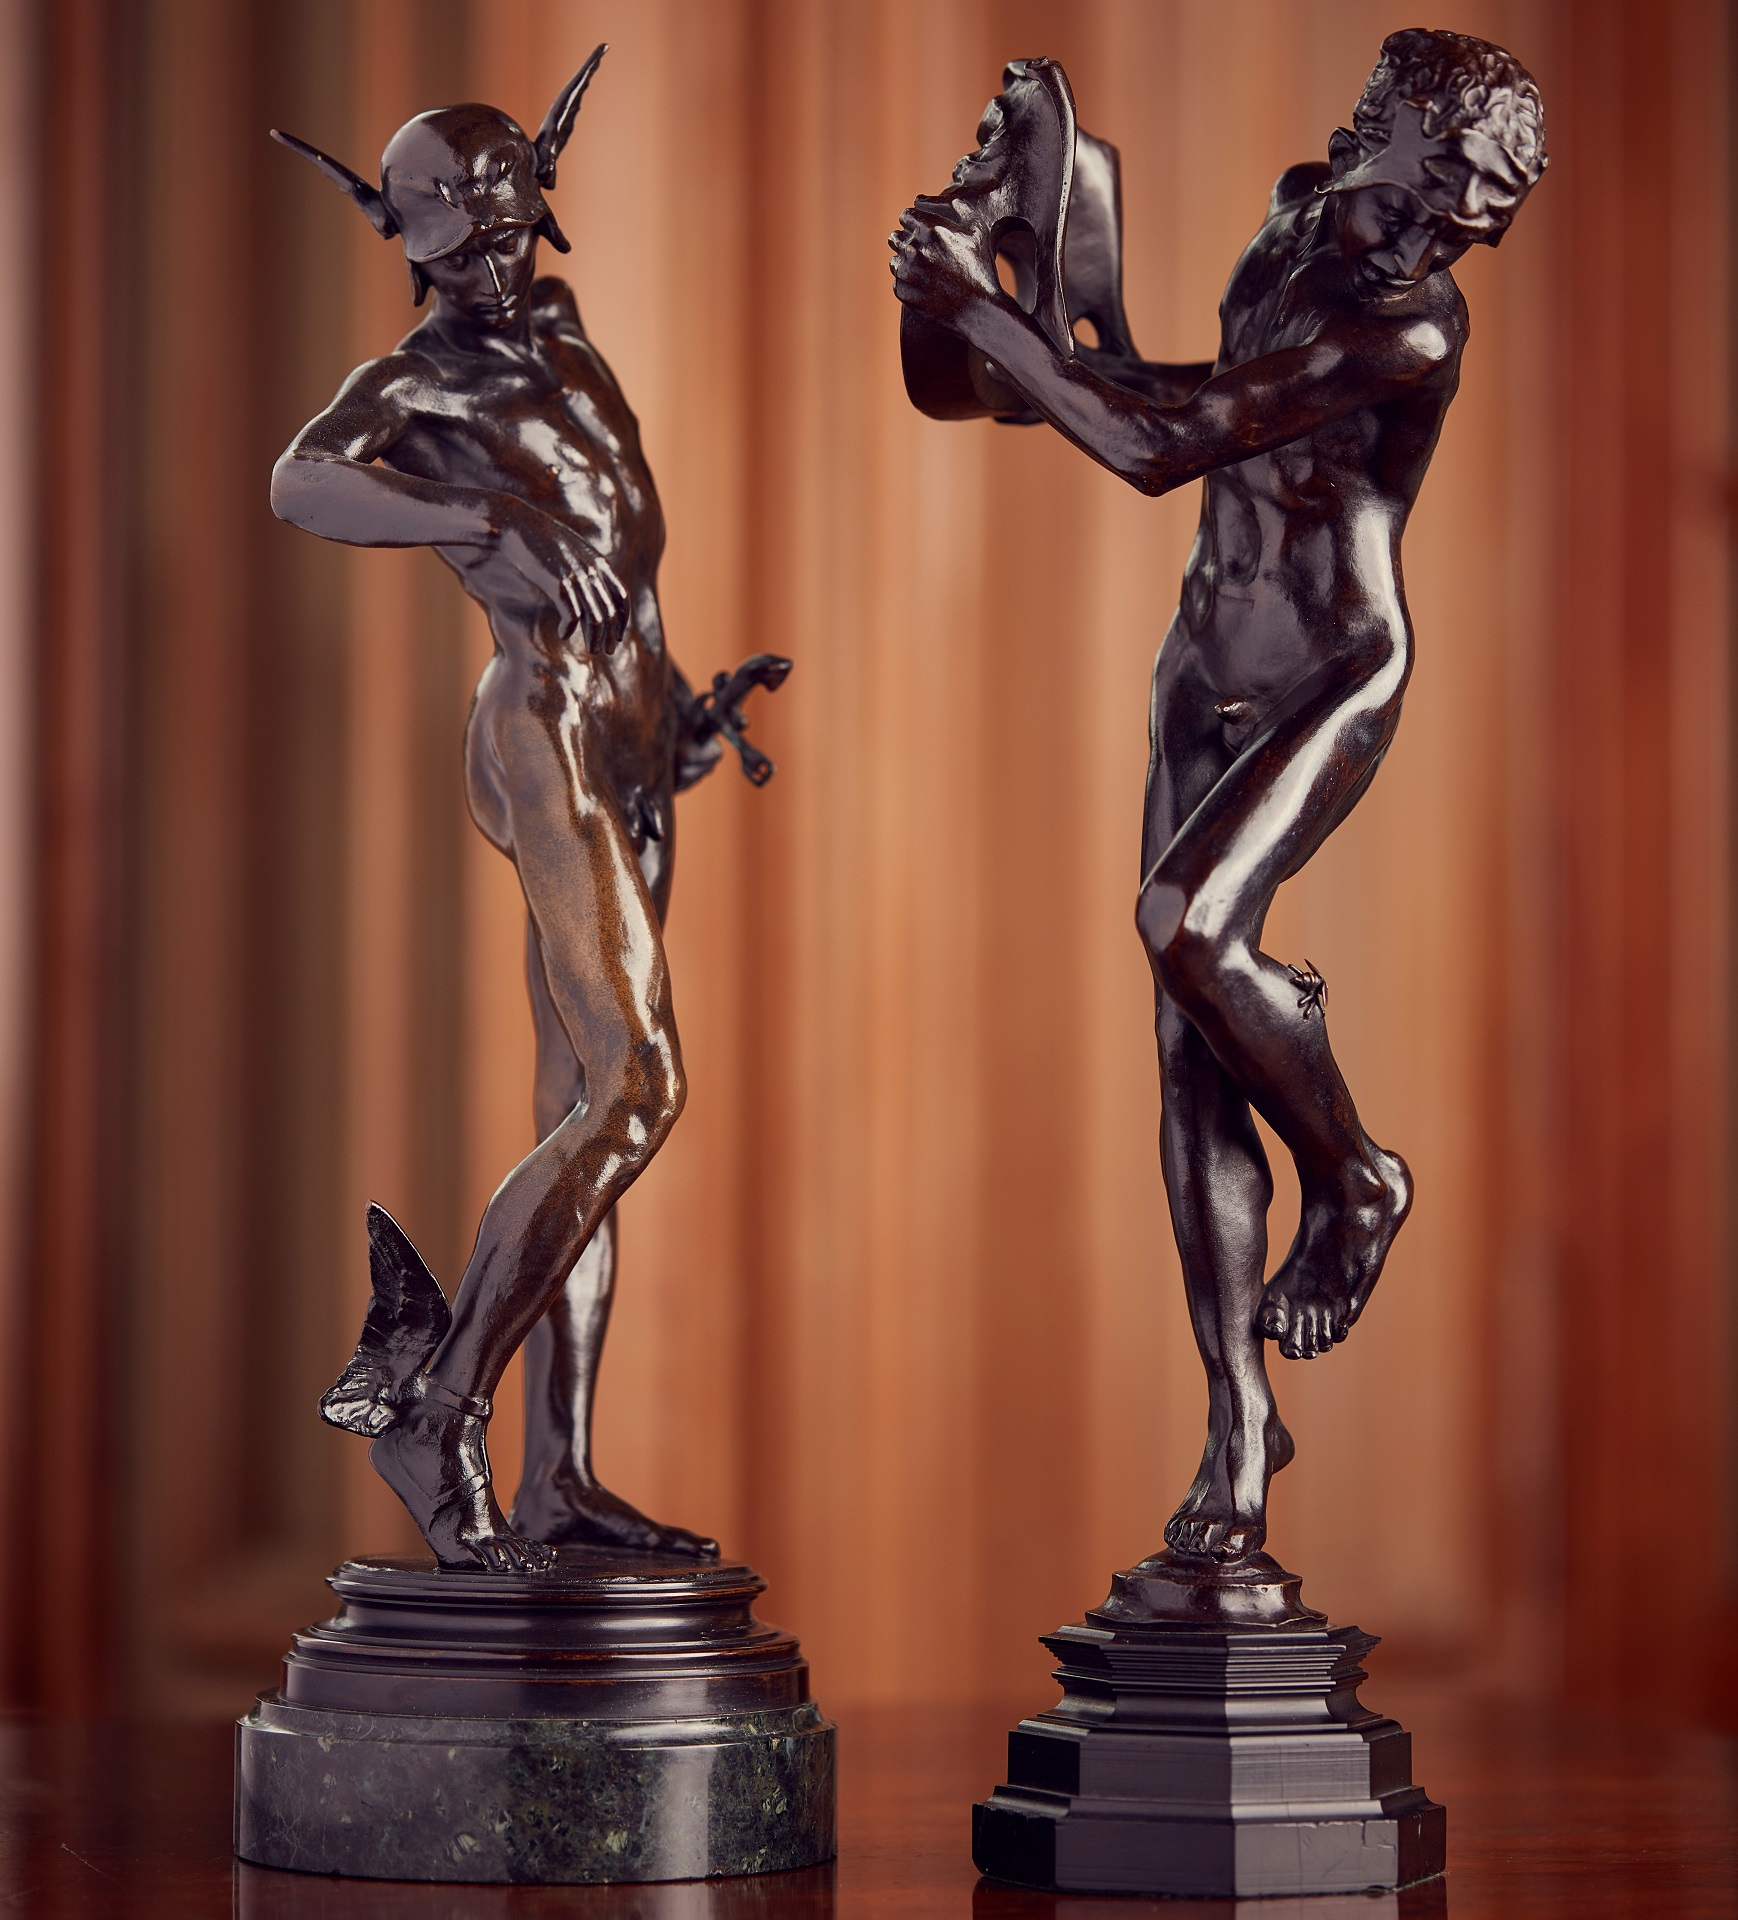 Left: LOT 122 | SIR ALFRED GILBERT R.A. | PERSEUS ARMING